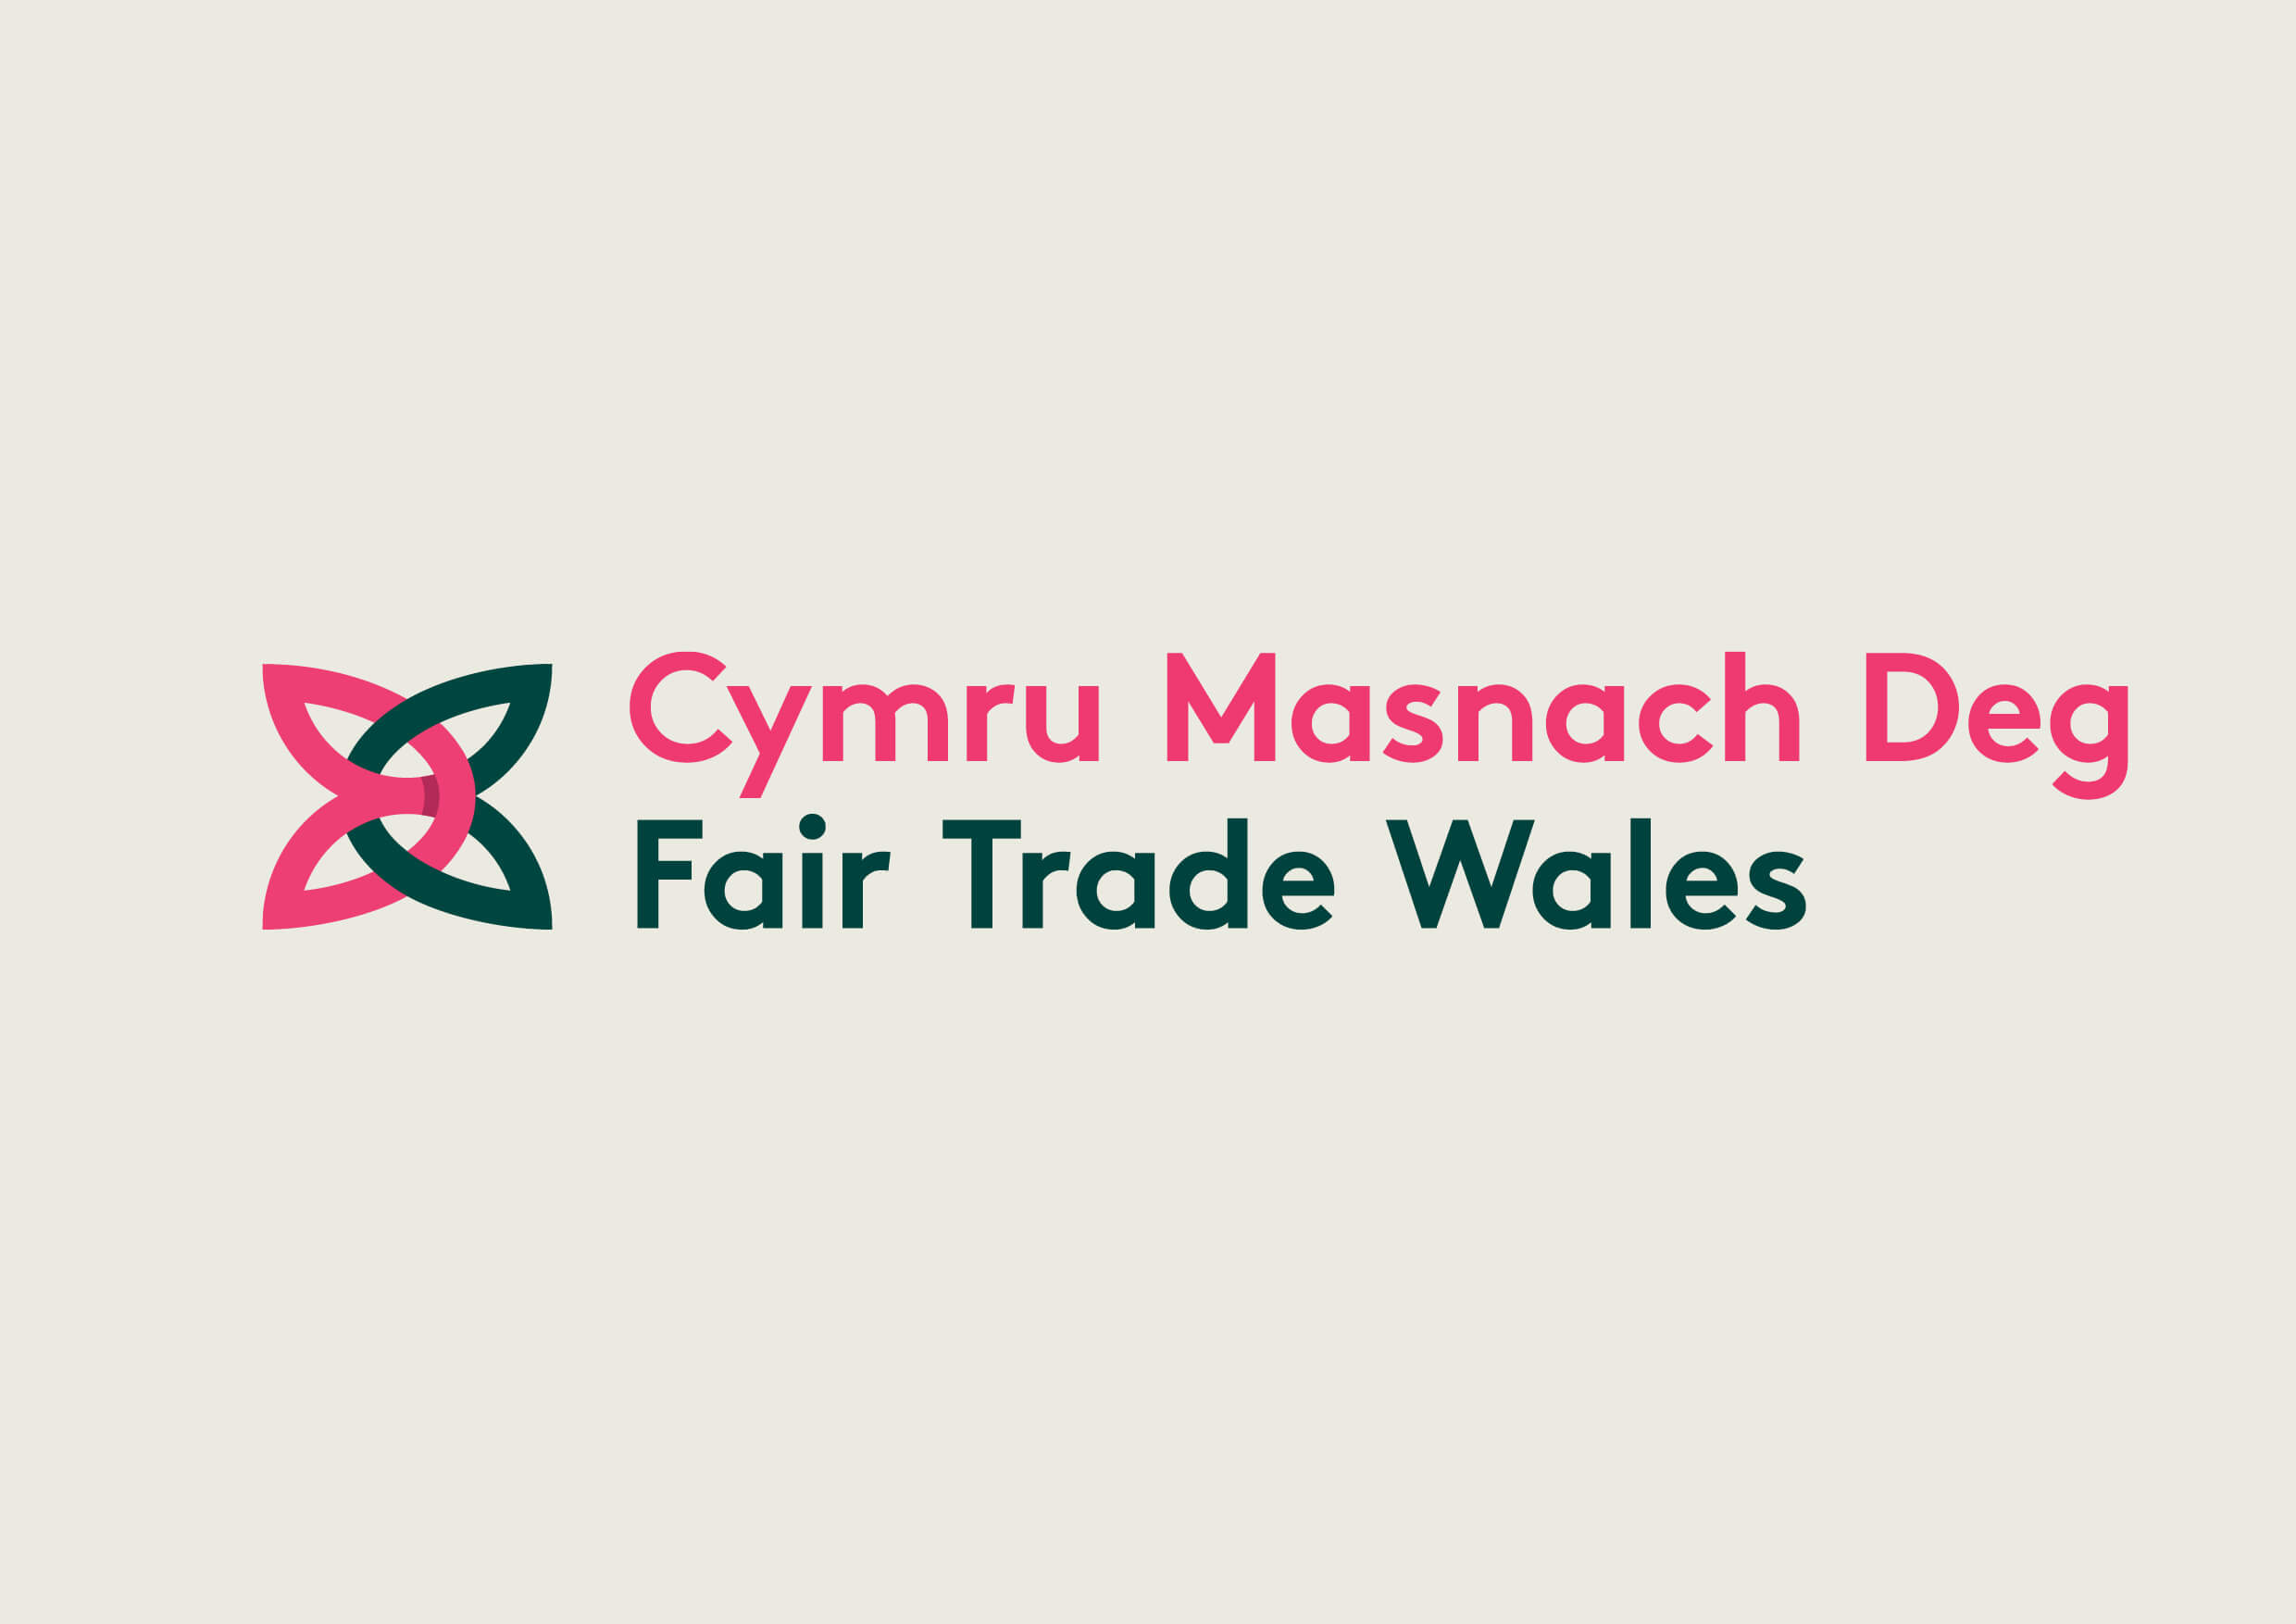 Fair Trade Wales is an organisation based in the United Kingdom that exists to grow the Fair Trade movement in Wales. It is funded by the Welsh Assembly Government. In June 2008 it led Wales to become the world's first Fair Trade Nation and as of 2010 is working towards the second phase of Fair Trade Nation targets. The organisation stages events during the annual Fairtrade Fortnight to raise awareness of Fairtrade in Wales. I worked with the Fair Trade Wales team to develop a modern and accessible identity which sought to evoke thei Welsh heritage while avoiding cliches.